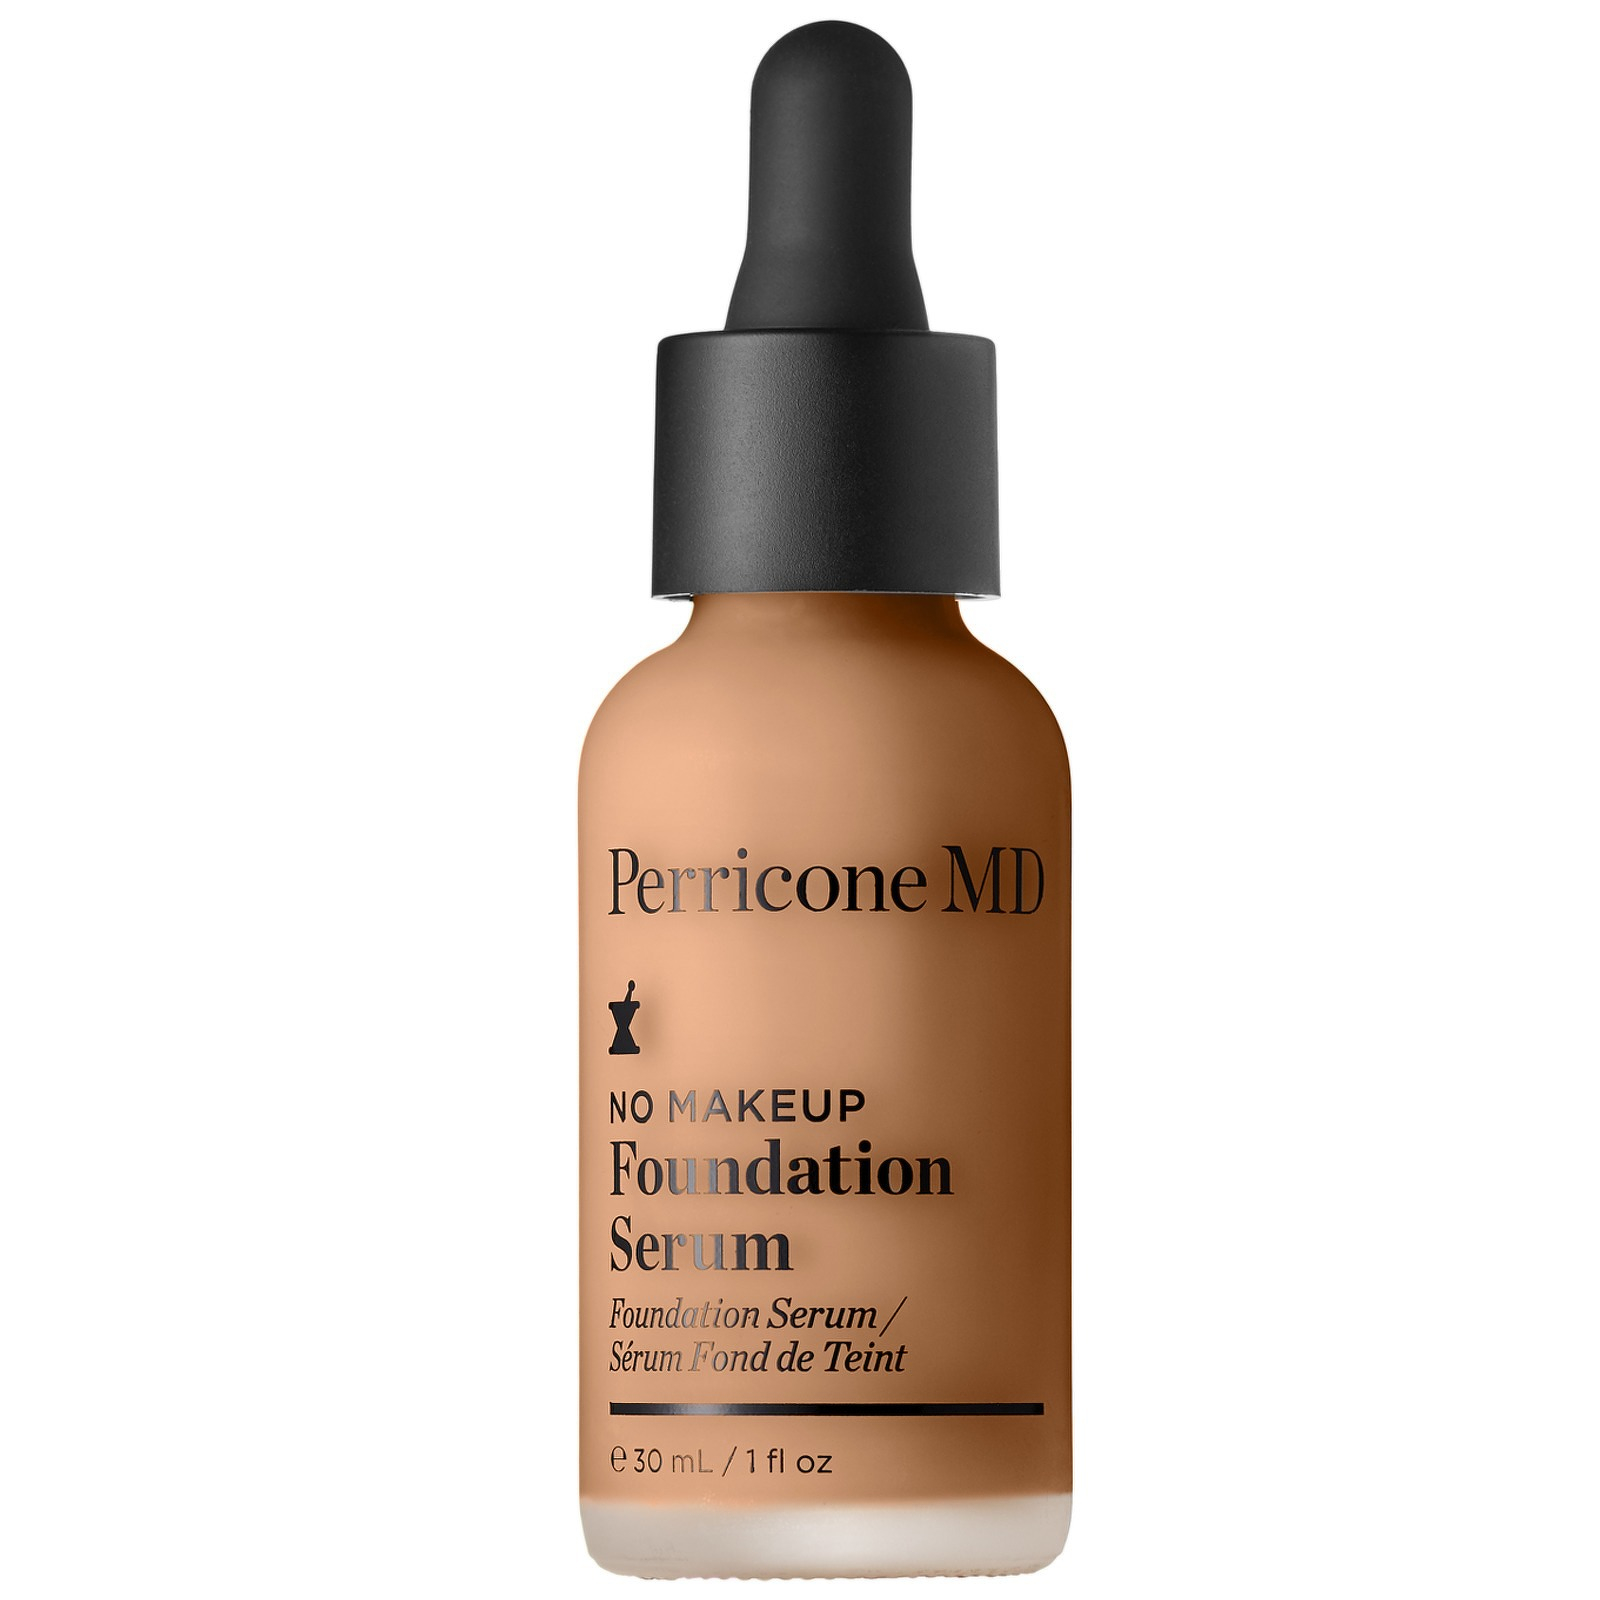 Perricone MD No Makeup Foundation Serum SPF20